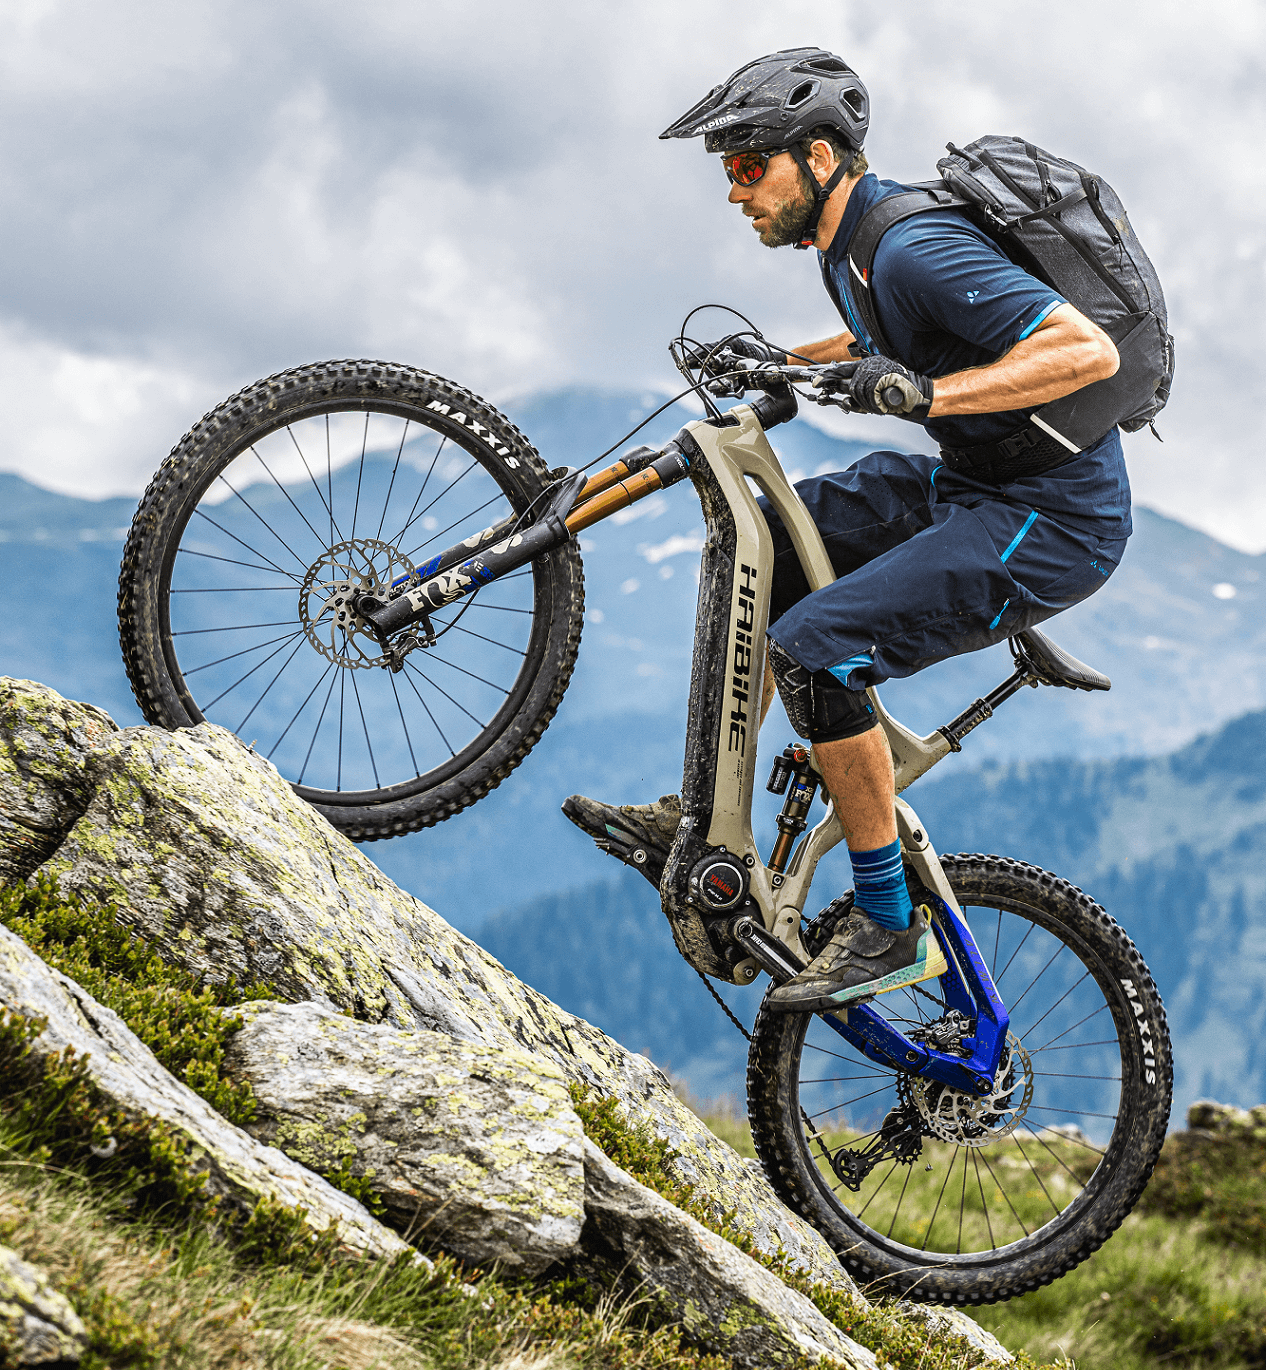 Haibike Hero Andi Wittmann on Yamaha PW-X2 eMTB riding uphill